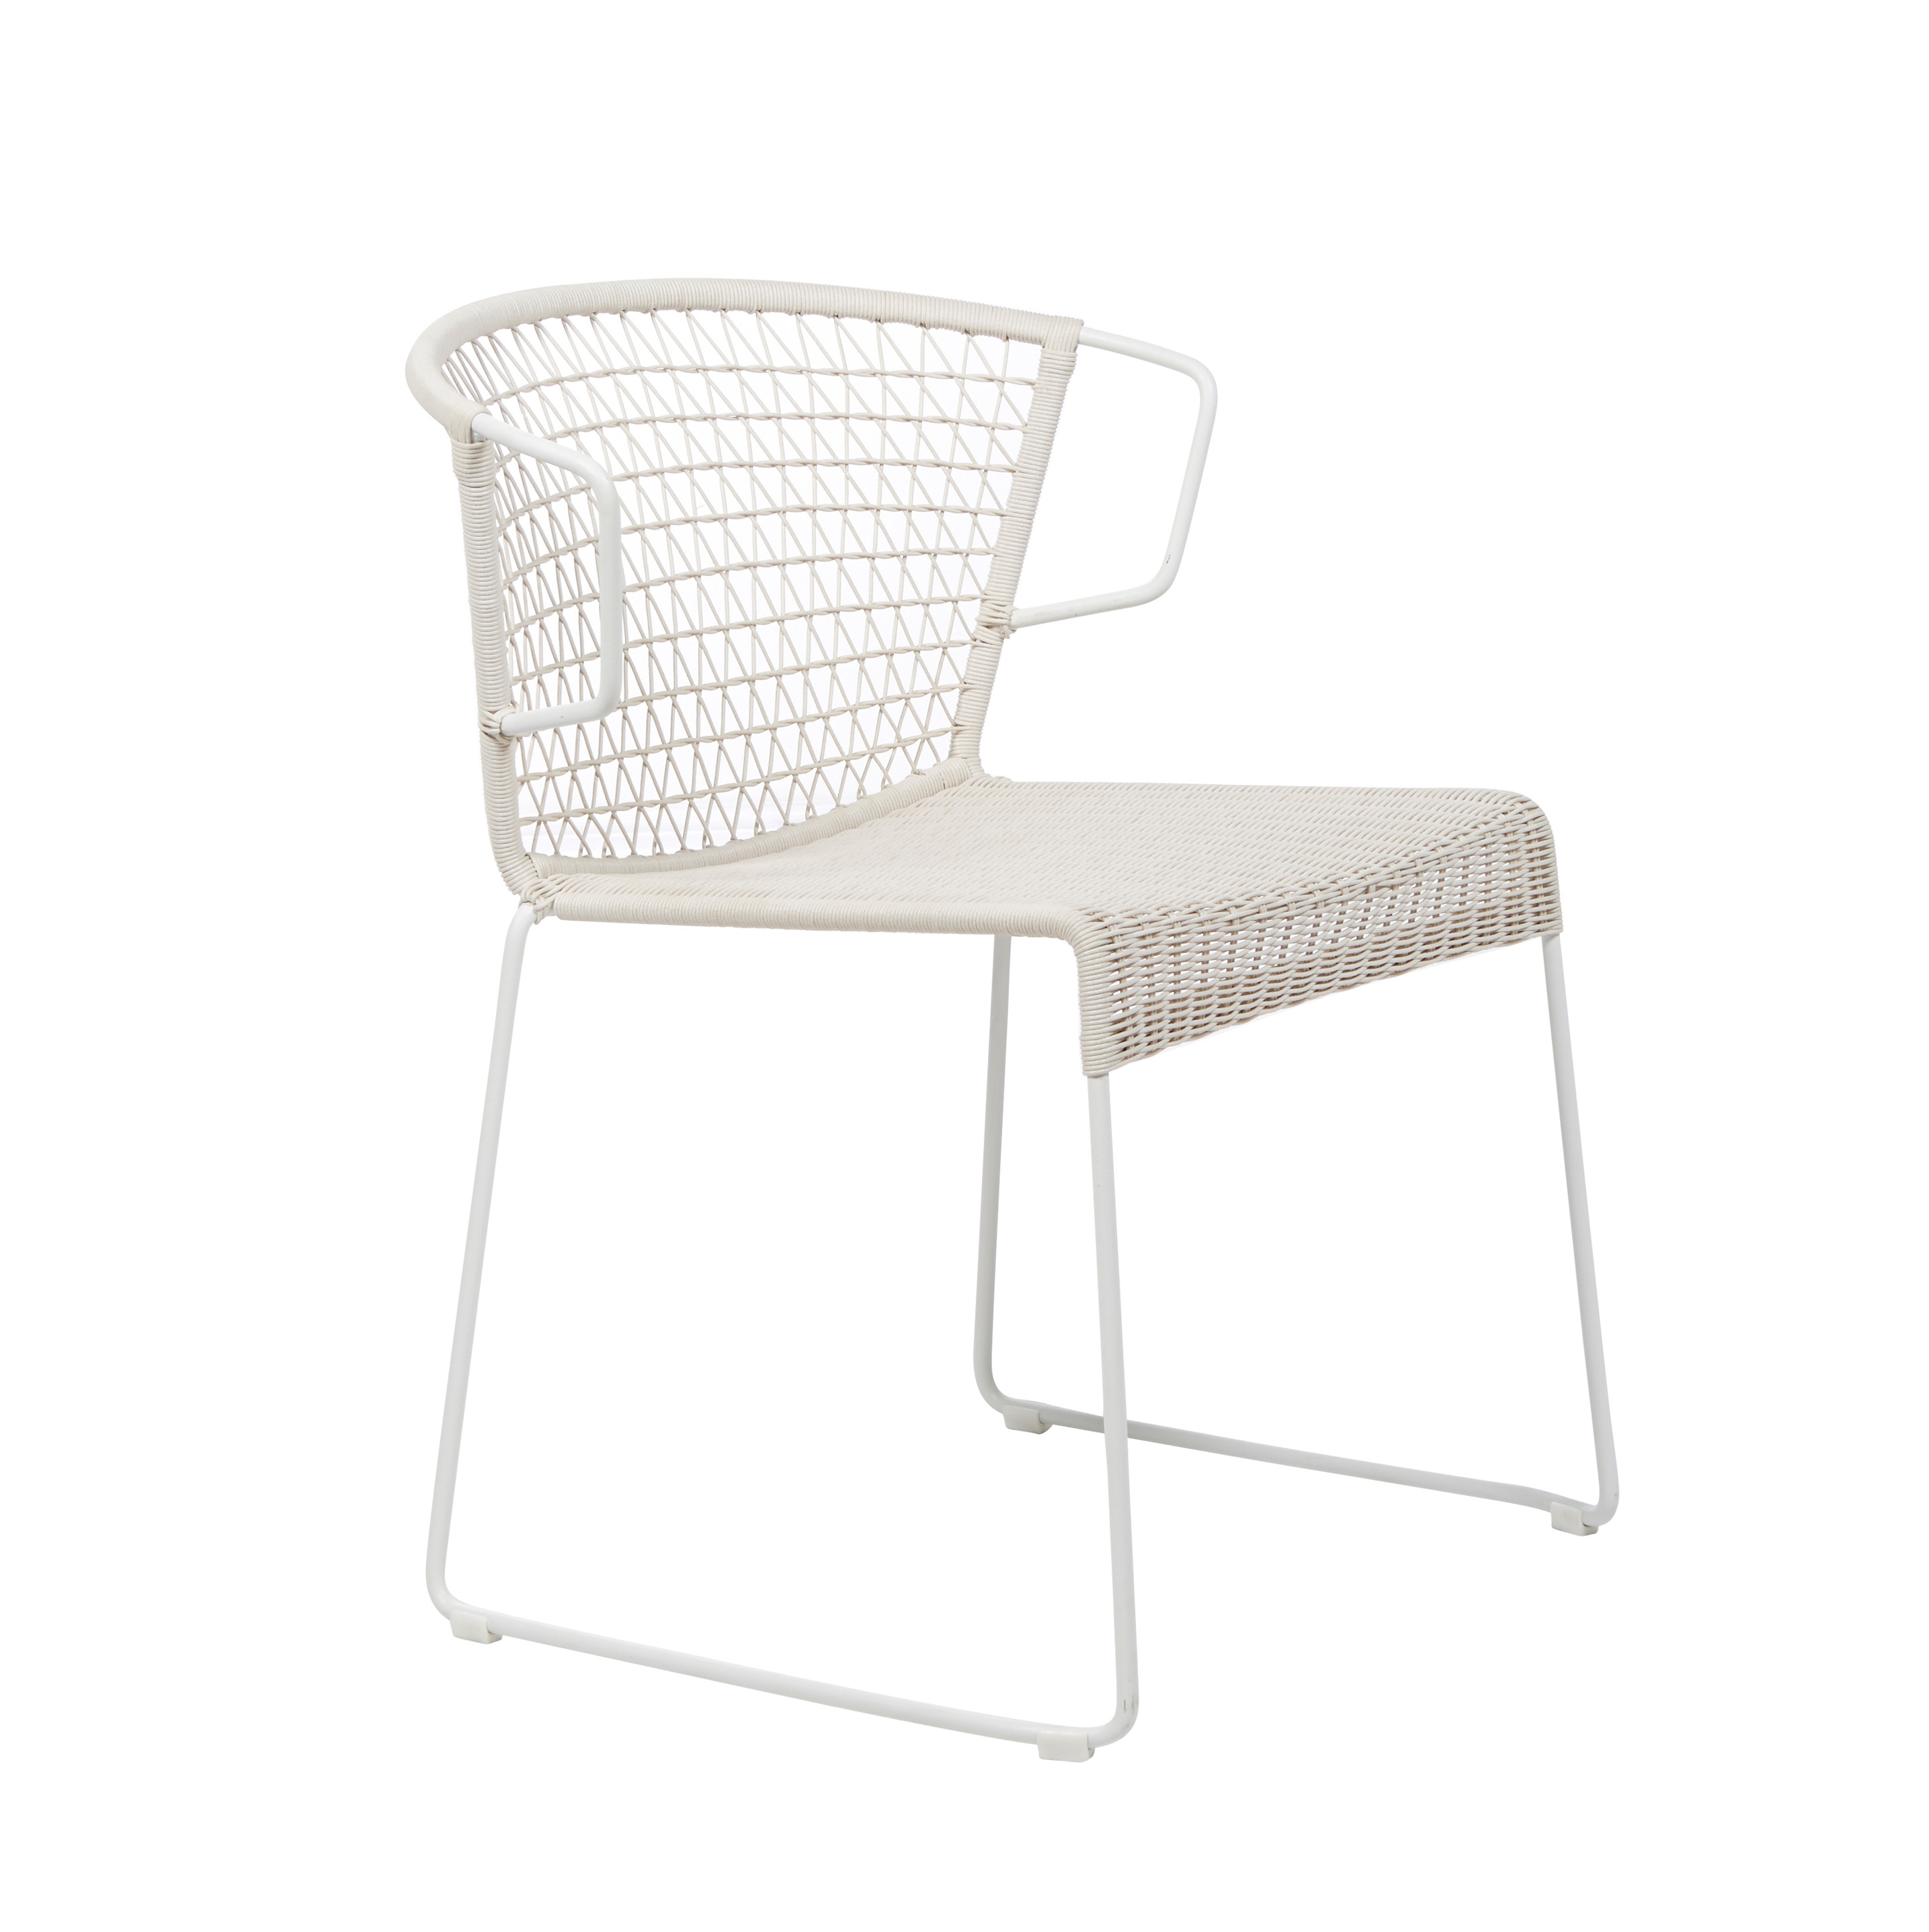 Furniture Hero-Images Dining-Chairs-Benches-and-Stools granada-rhodes-arm-01